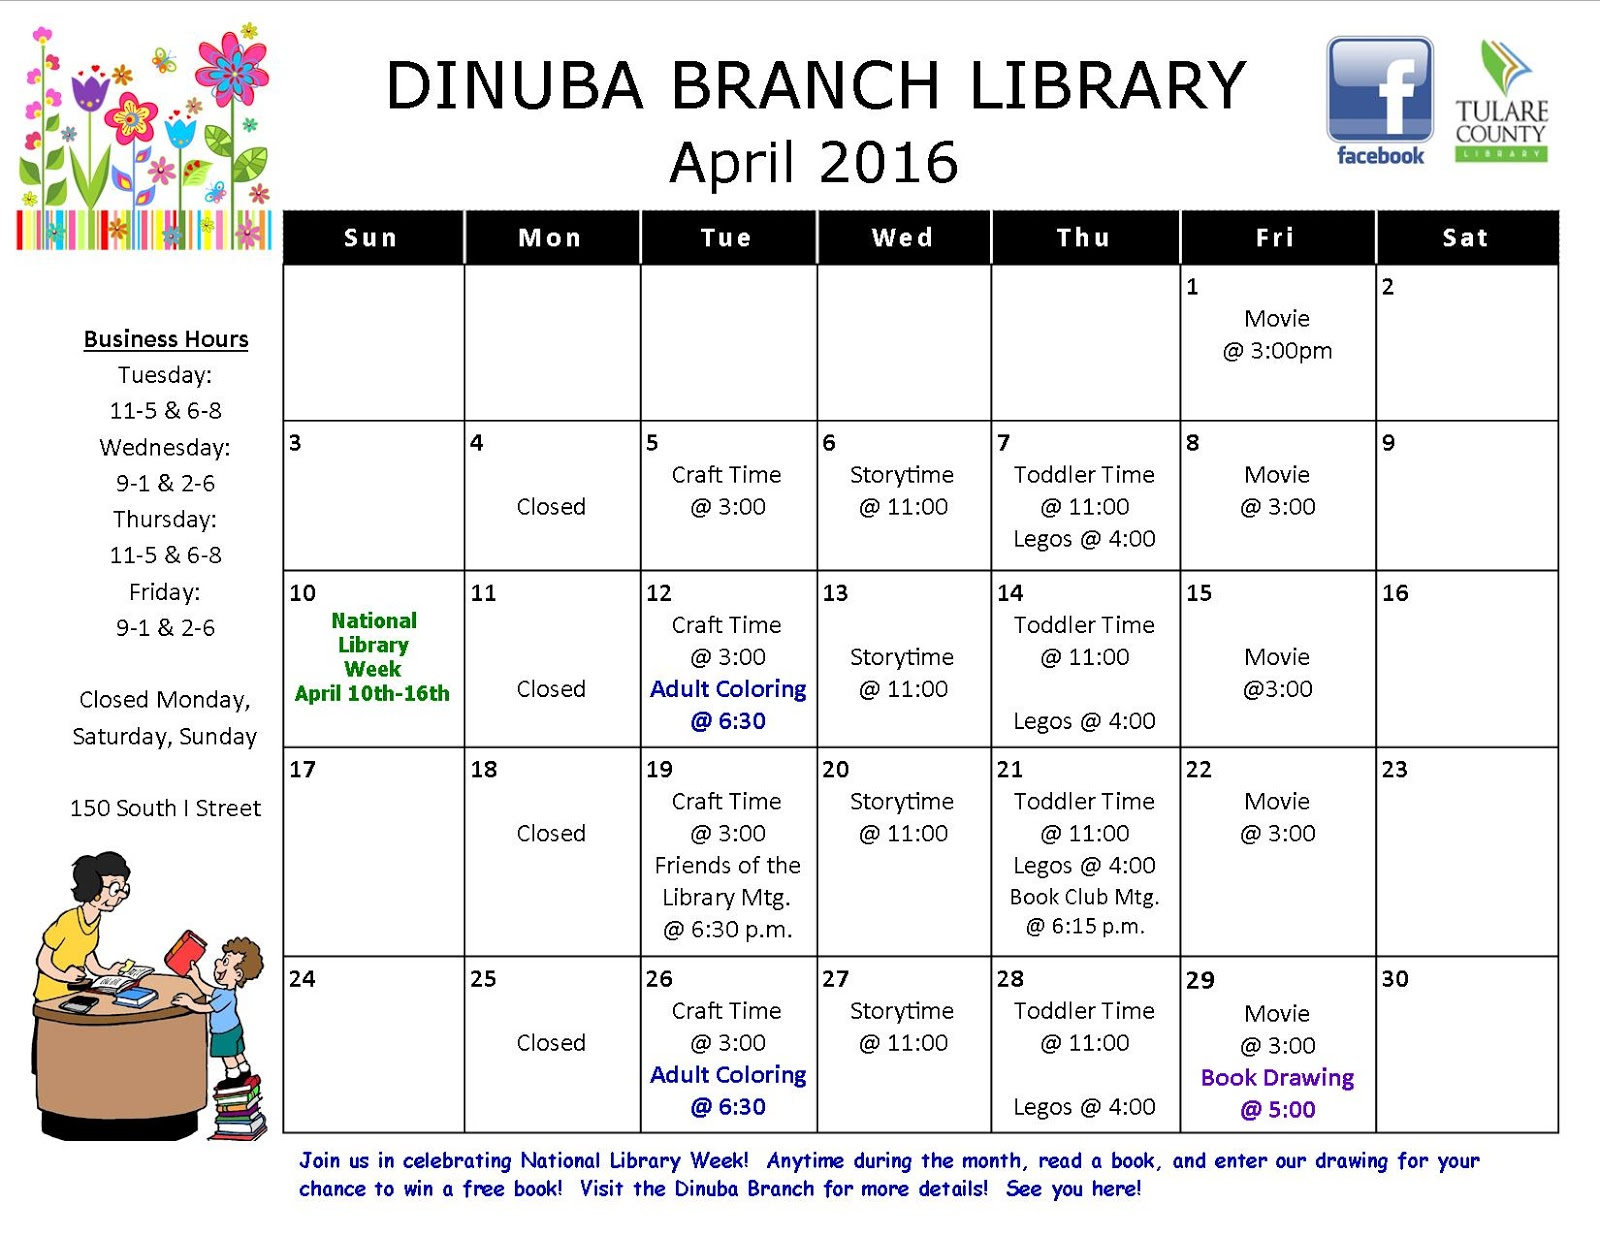 Calendar April 2016.Tulare County Library News And Events Dinuba Branch Calendar April